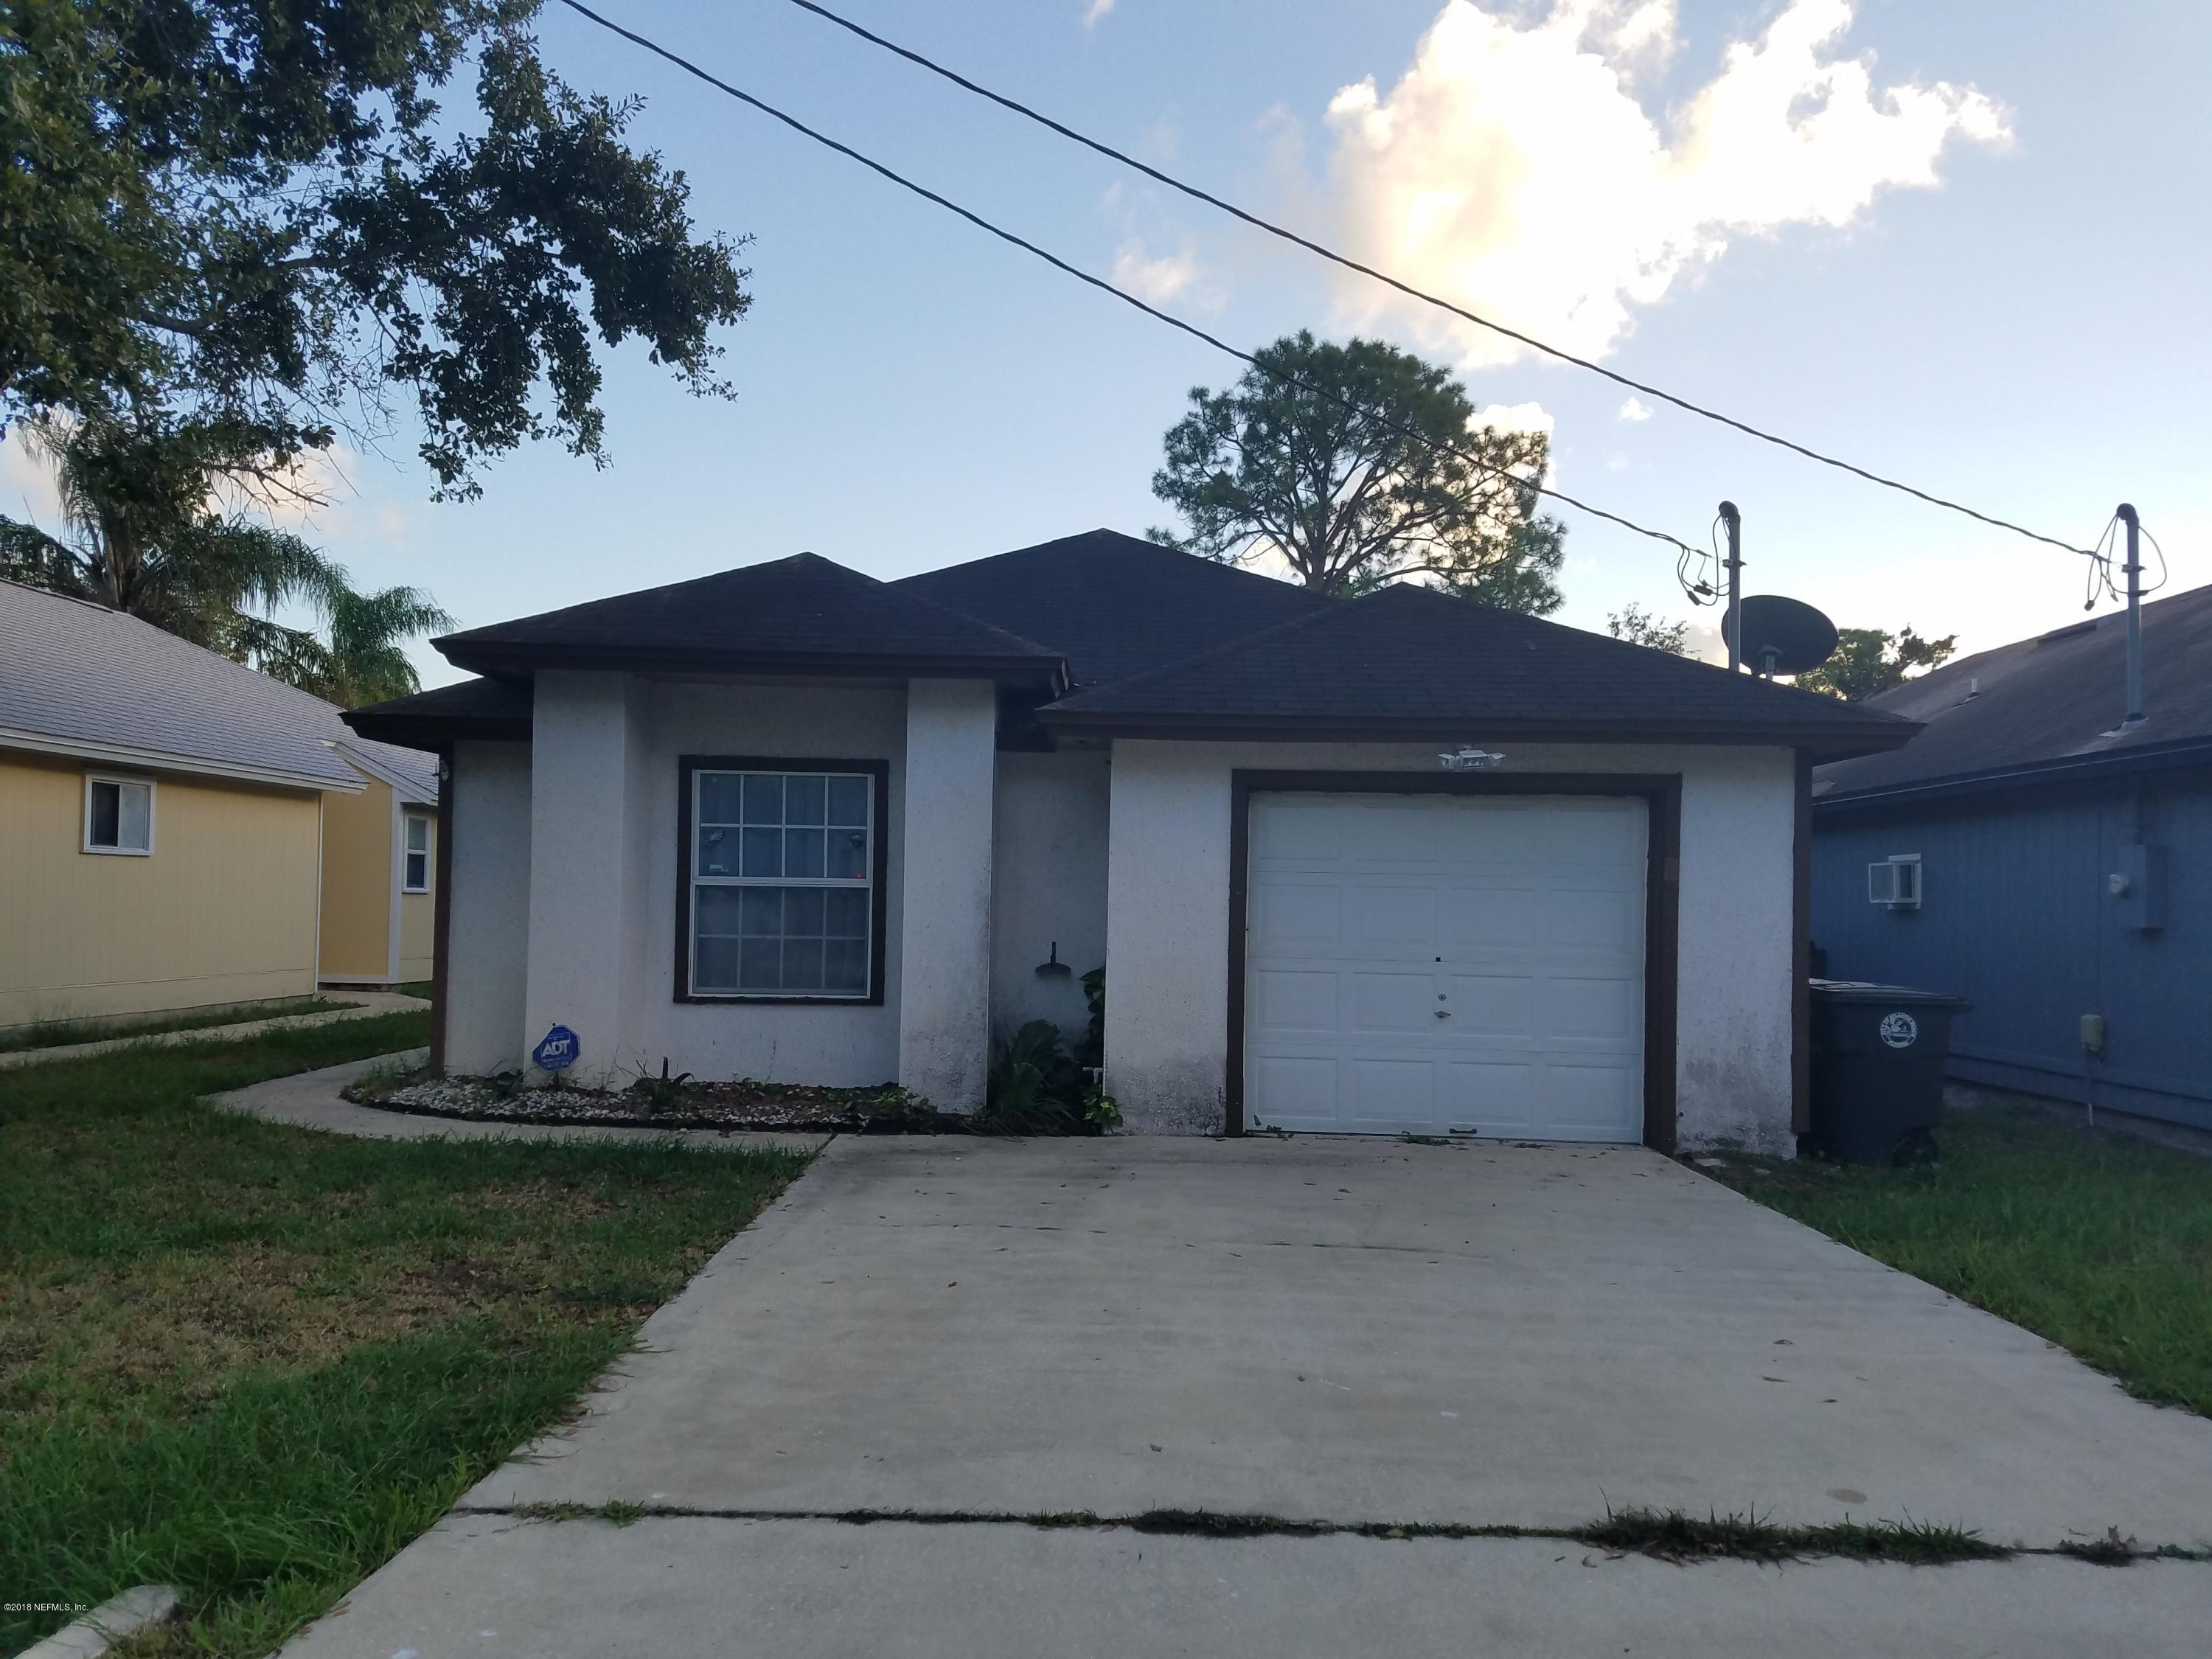 76 7TH, ATLANTIC BEACH, FLORIDA 32233, 3 Bedrooms Bedrooms, ,2 BathroomsBathrooms,Residential - single family,For sale,7TH,970638